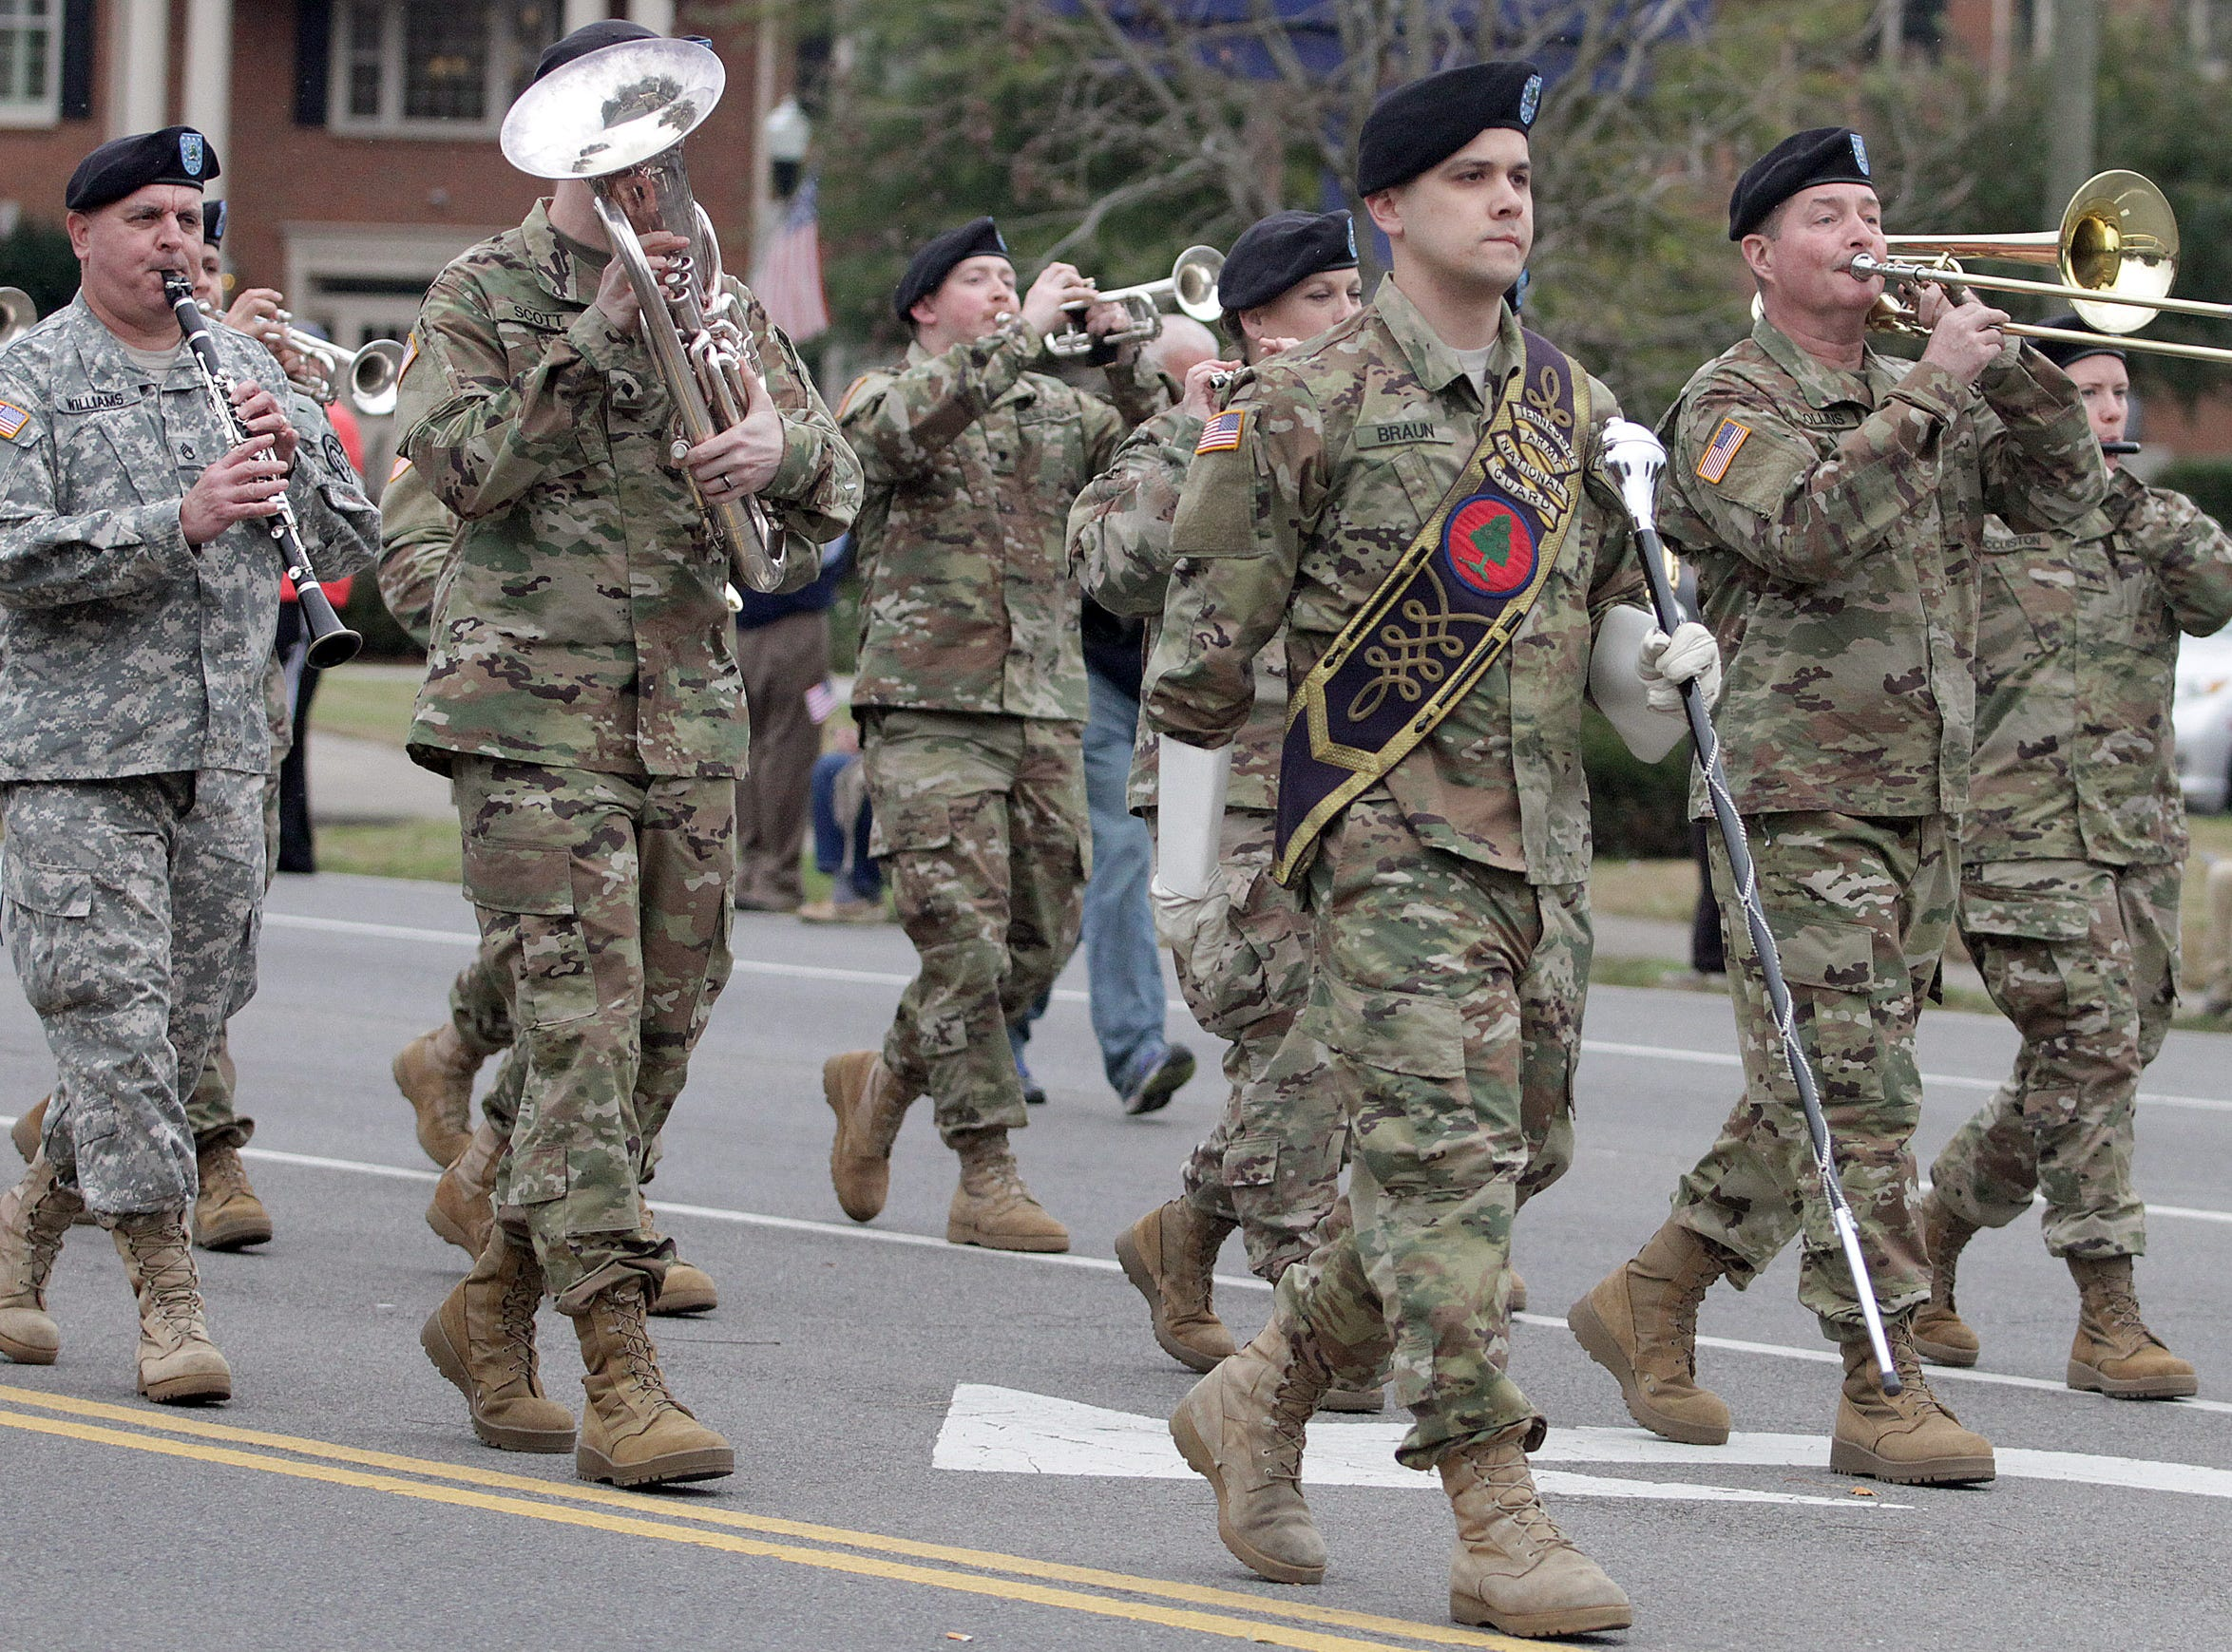 Members of Tennessee National Guard play in the Veterans Day Parade in Hendersonville, TN on Sunday, November 4, 2018.